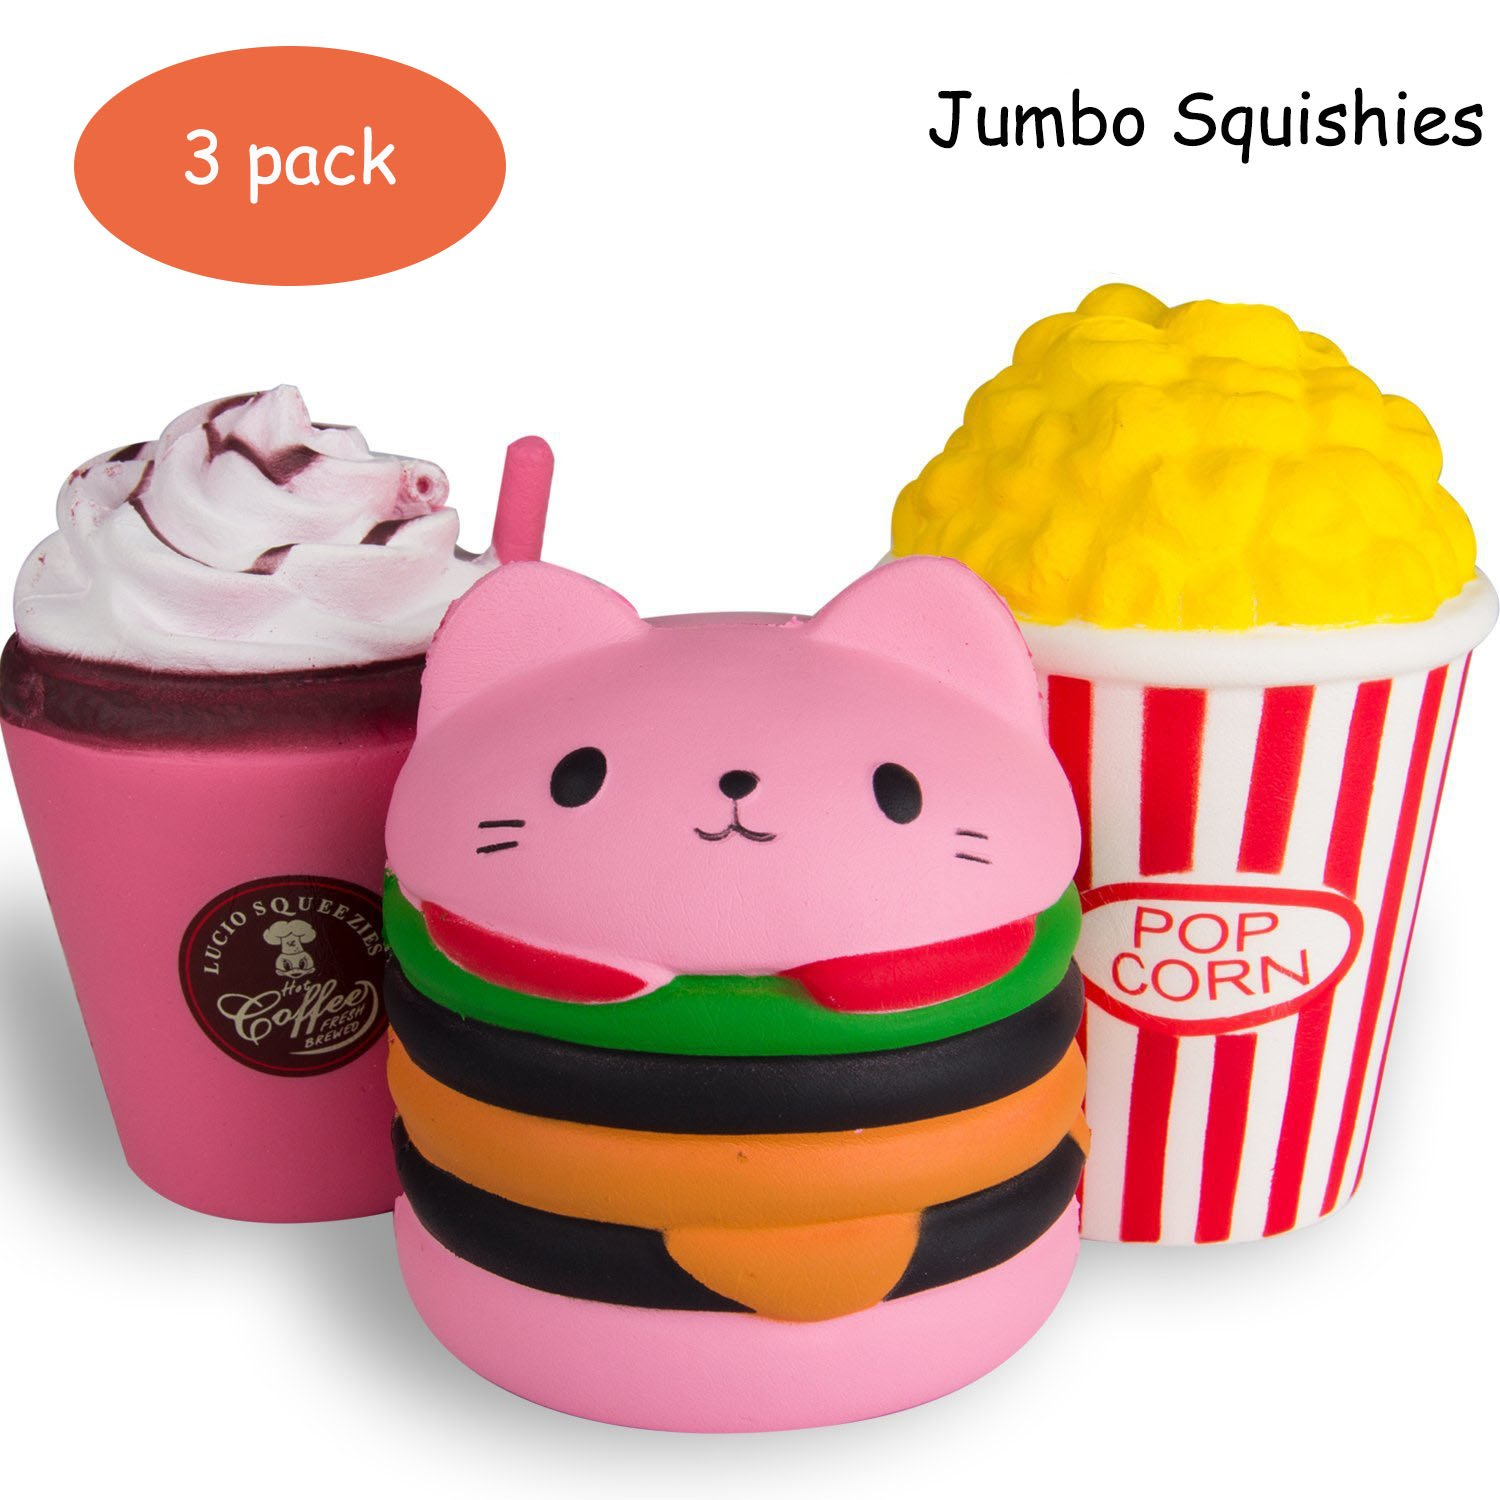 HIGO TOY 3pc Jumbo Squishies Set Hamburger Popcorn Coffee Cup Scented Slow Rising Squeeze squishies Toy Stress Relief Decorations Toy Great Gift for Adults and Kids, Party Birthday Toys